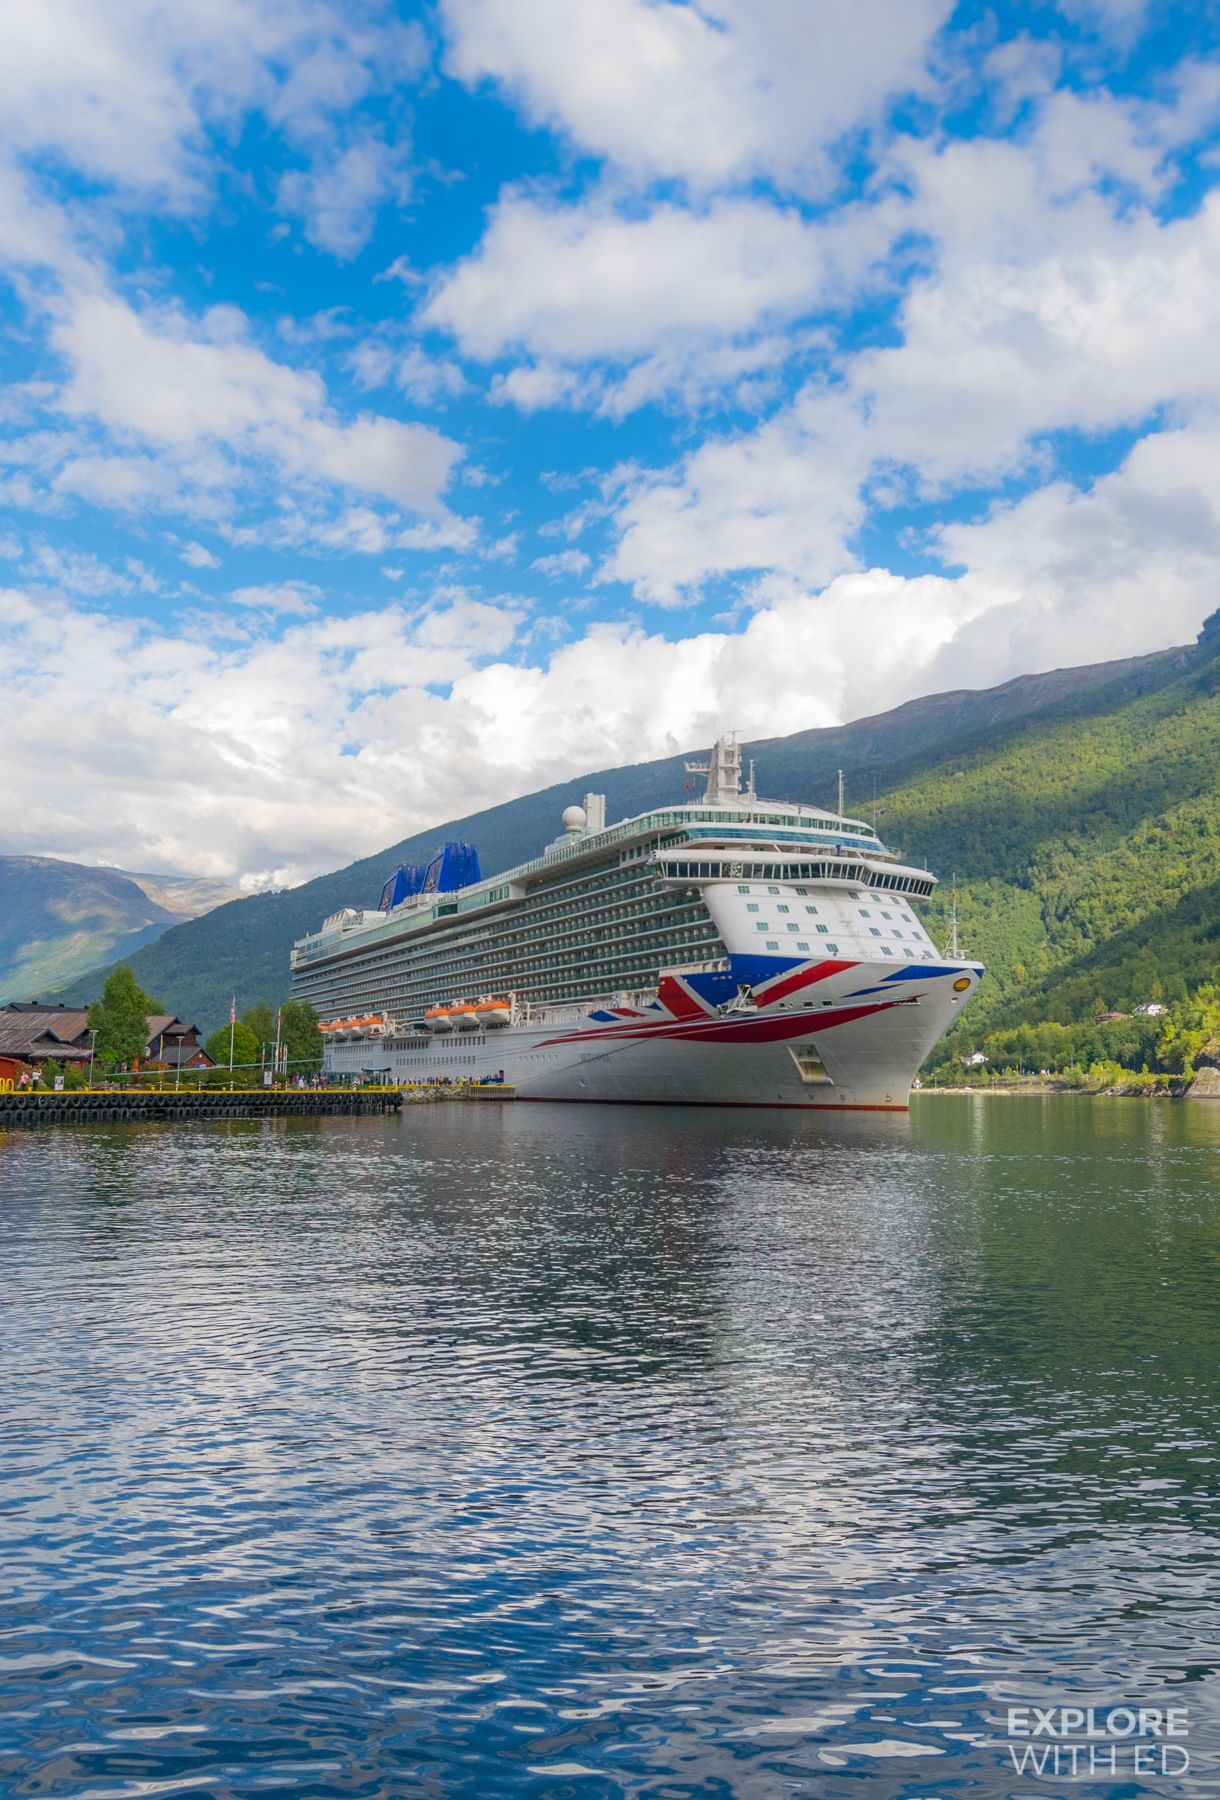 What S A Cruise To The Norwegian Fjords Like From Southampton Explore With Ed Norway Cruise Scandinavian Cruises Fjord Cruises